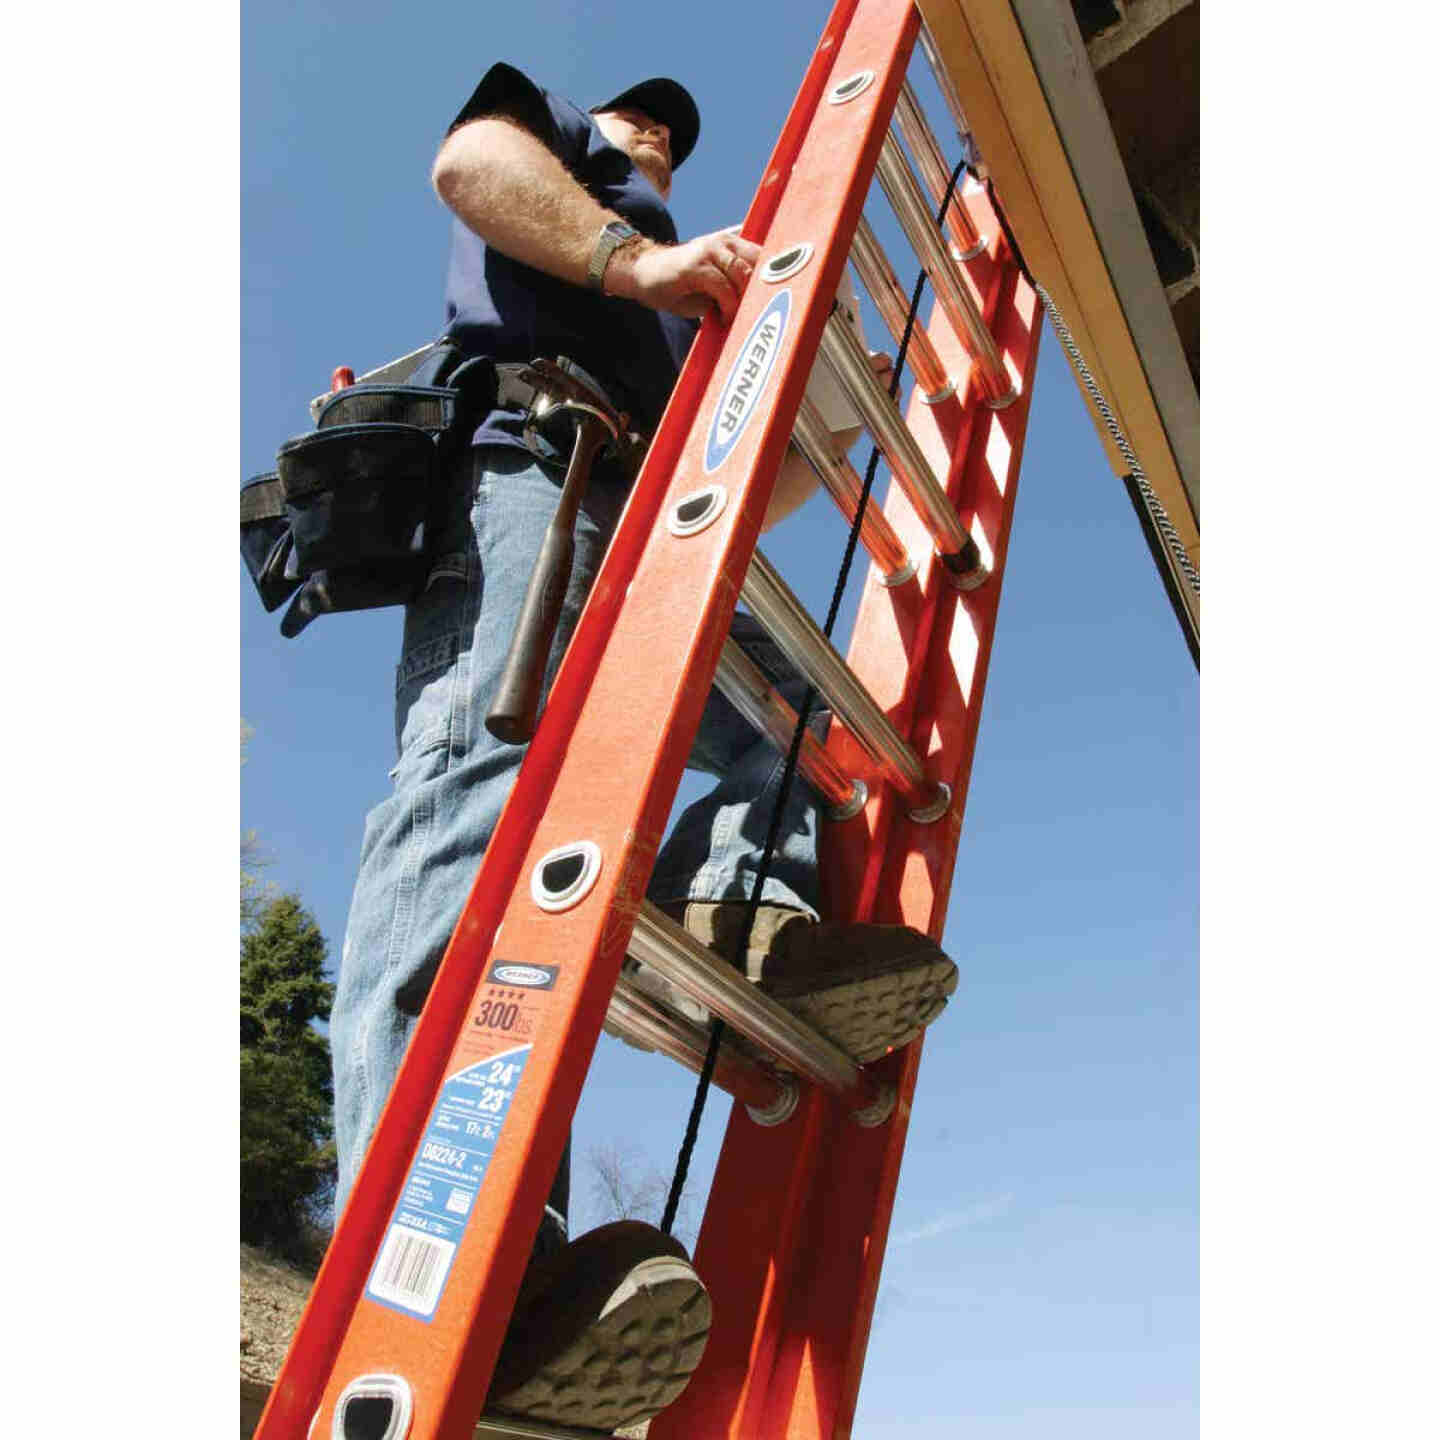 Werner 24 Ft. Fiberglass Extension Ladder with 300 Lb. Load Capacity Type IA Duty Rating Image 3